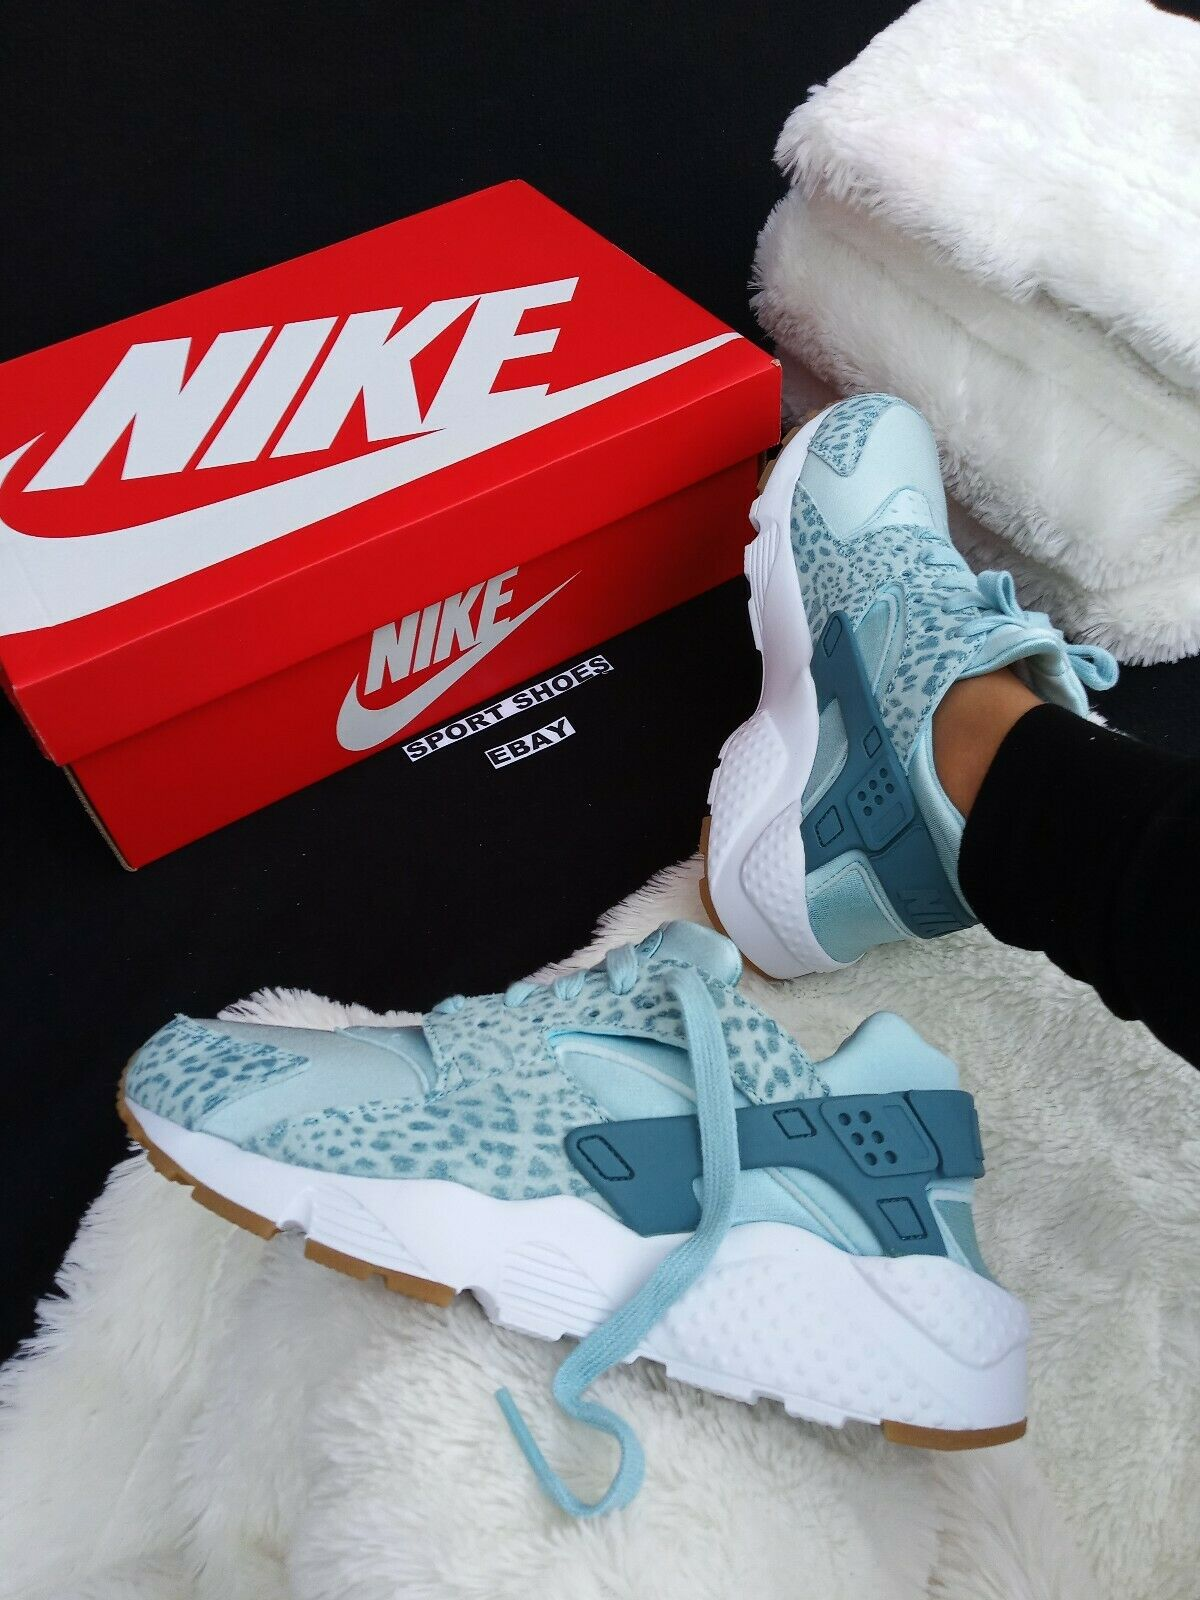 5Y   6 WOMEN'S NIKE HUARACHE RUN blueE  ANIMAL PRINT CLASSIC RUNNING WALK